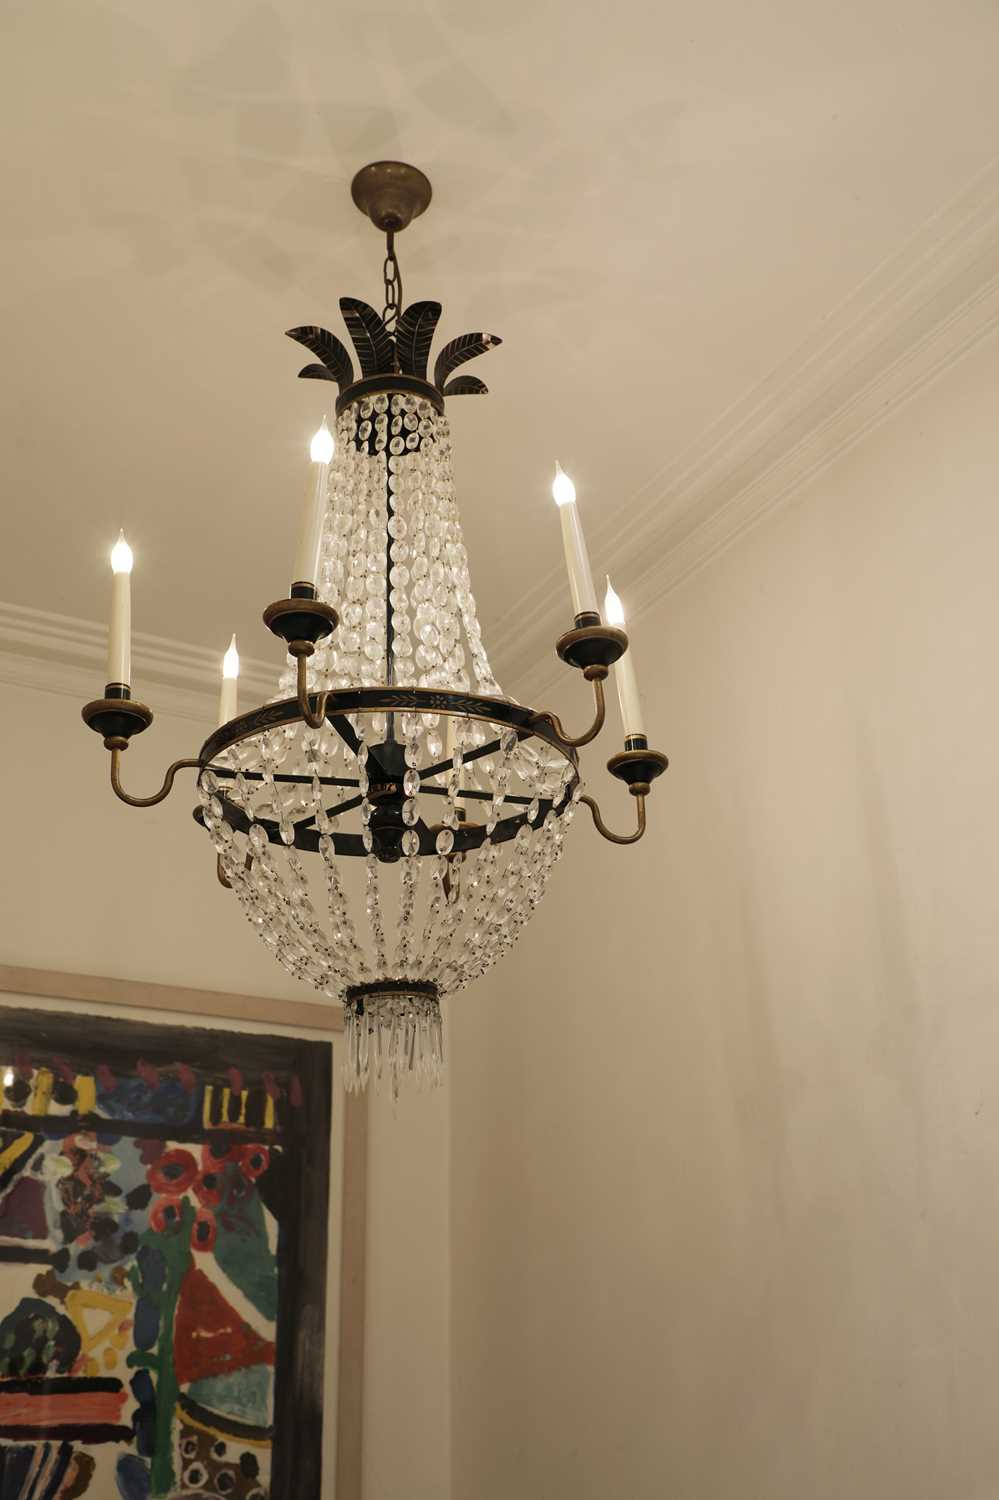 Lot 57 - A French Empire-style cut glass and toleware tent and bag chandelier